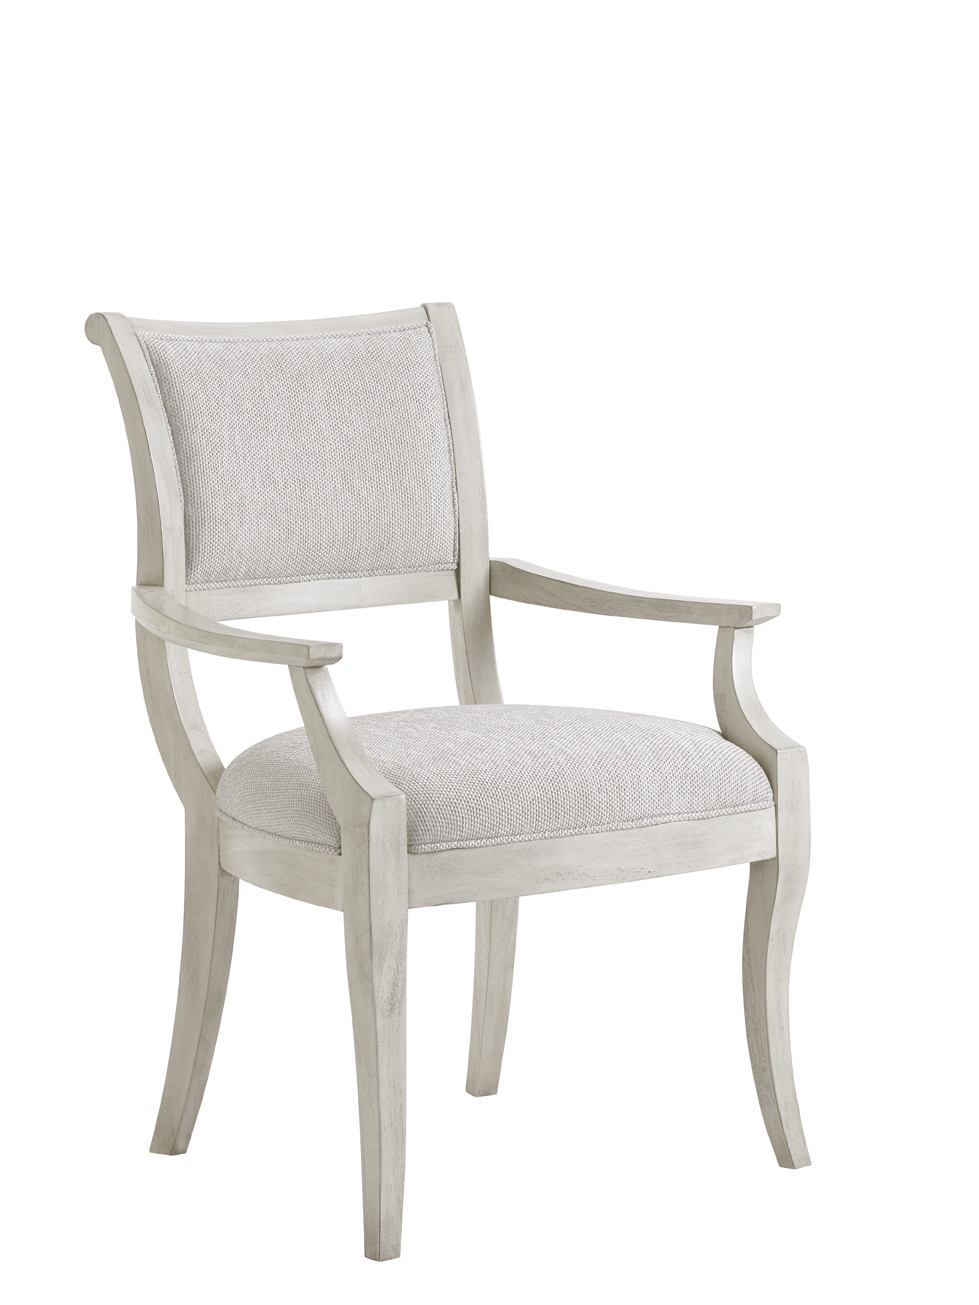 Lexington Oyster Bay Eastport Arm Chair in Light Oyster Shell (Set of 2) 714-881-01